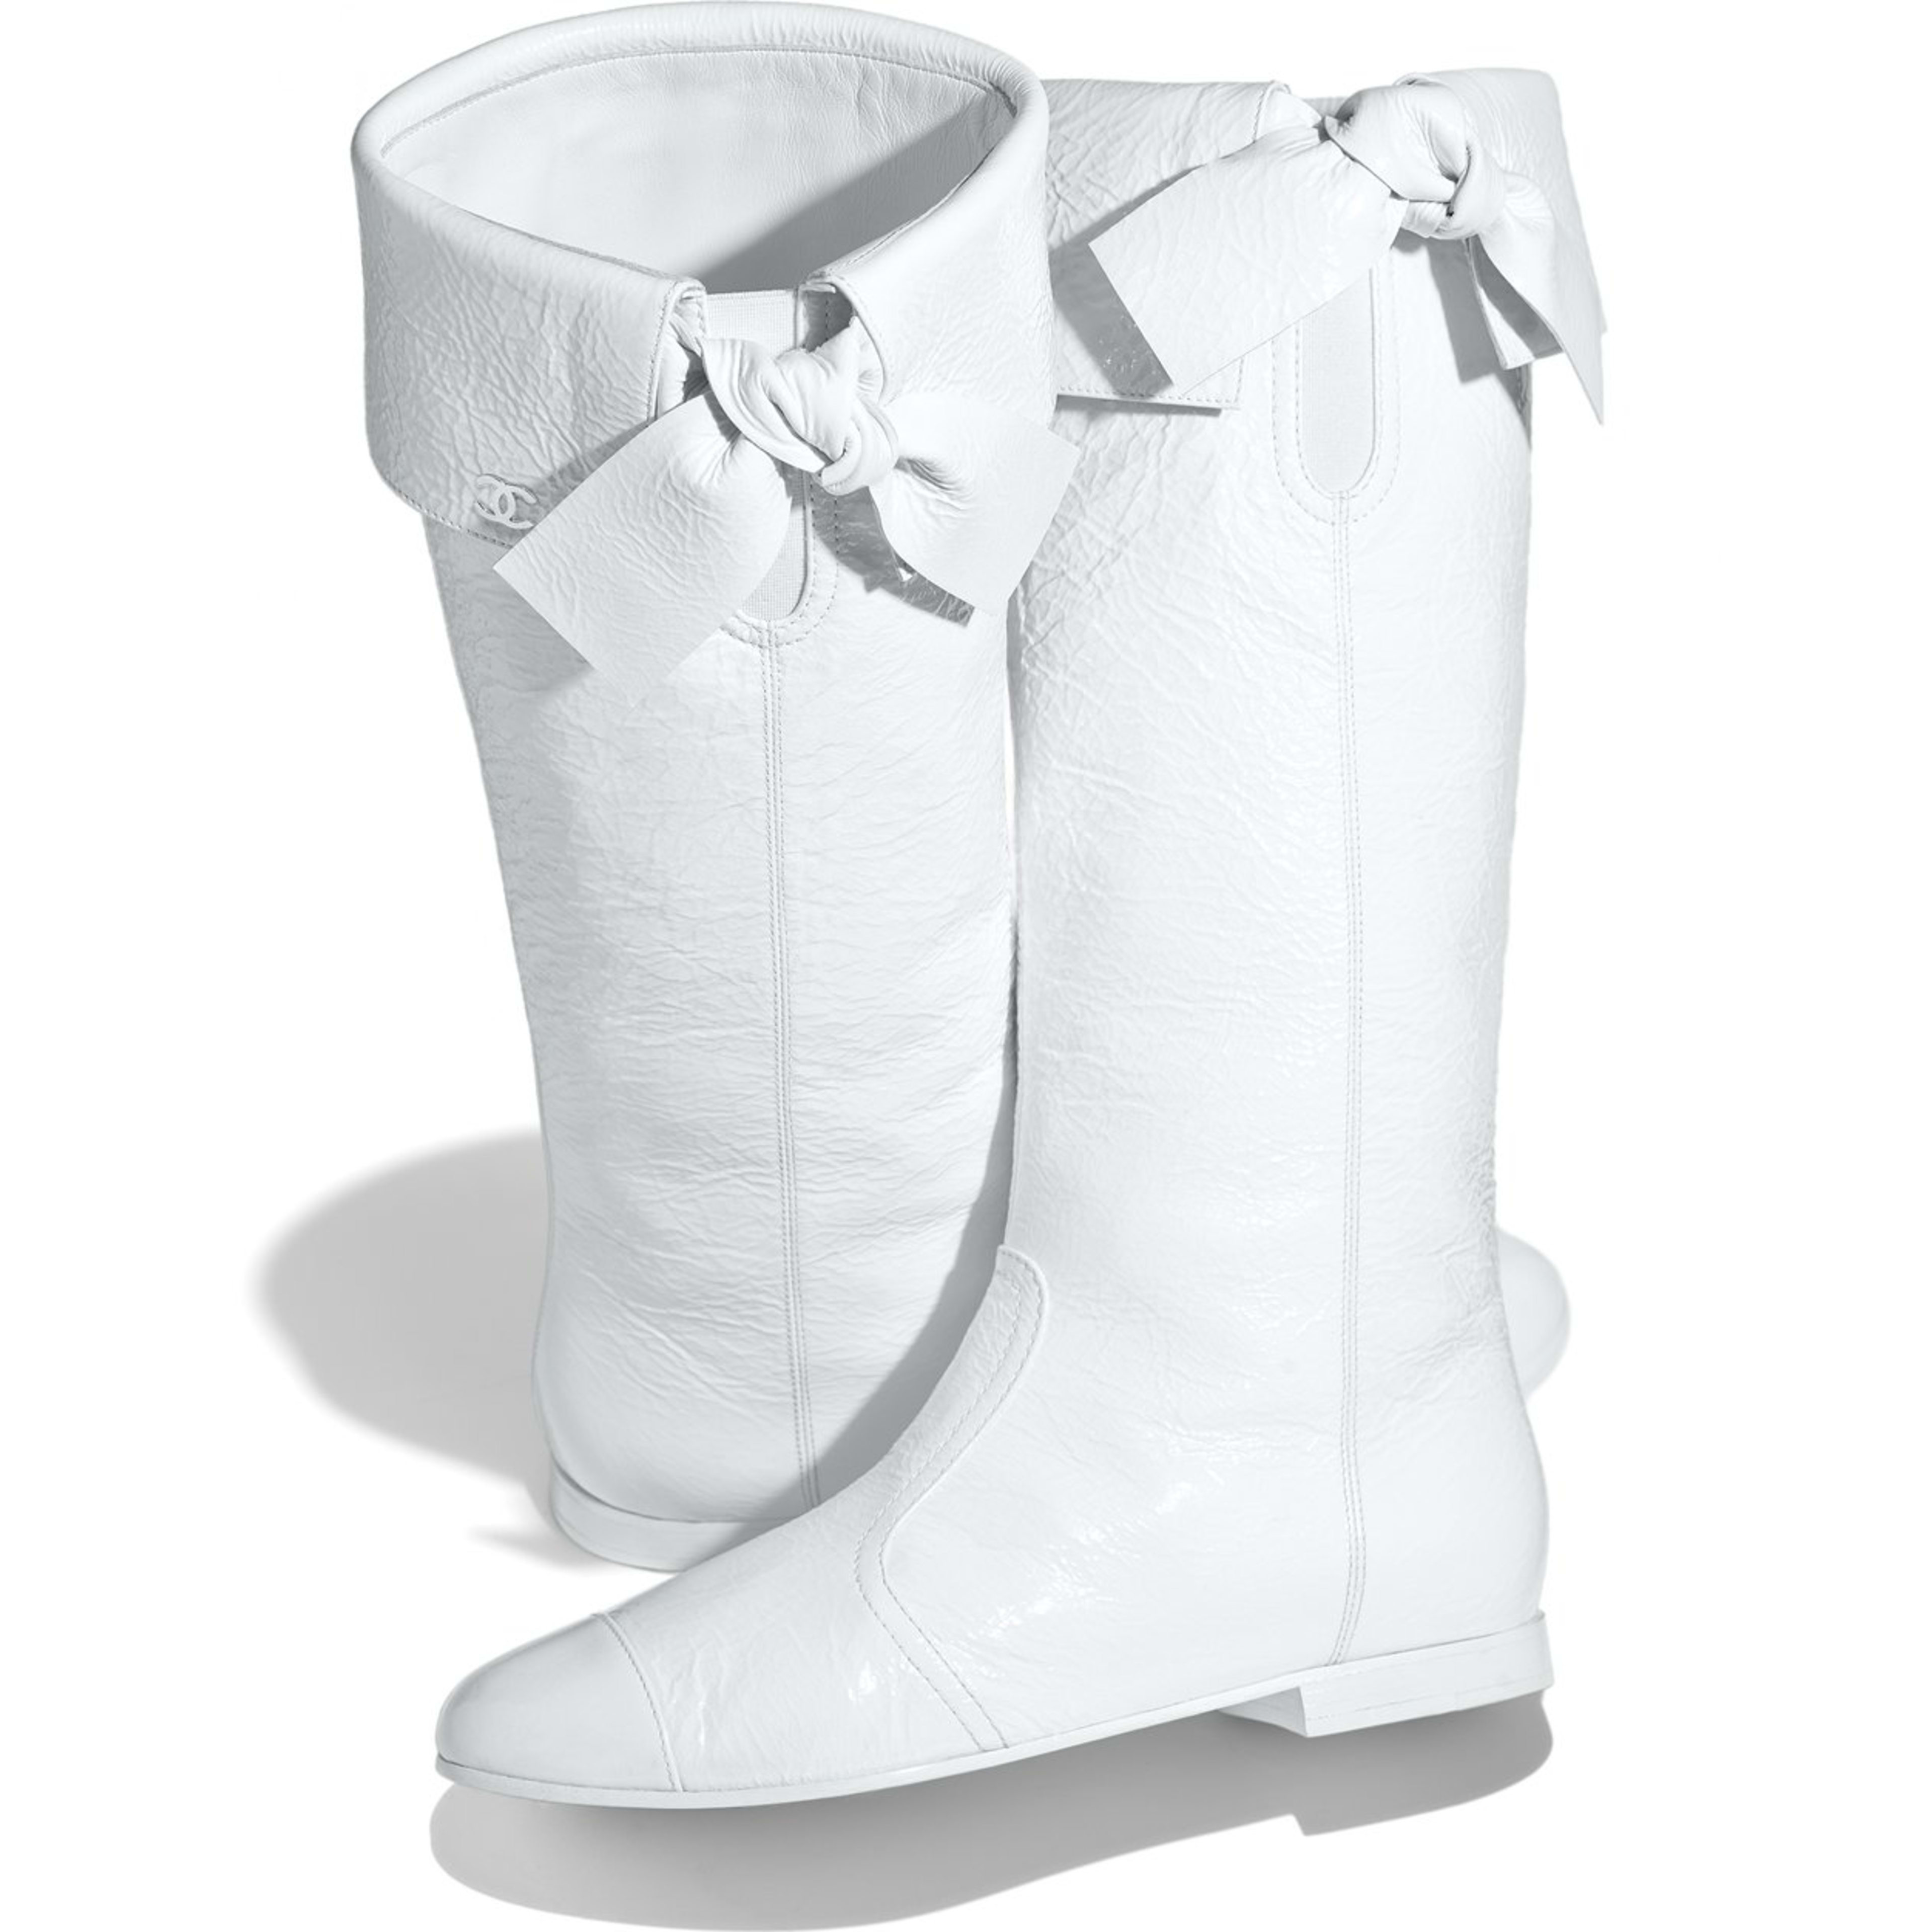 High Boots - White - Crumpled Lambskin - Extra view - see full sized version